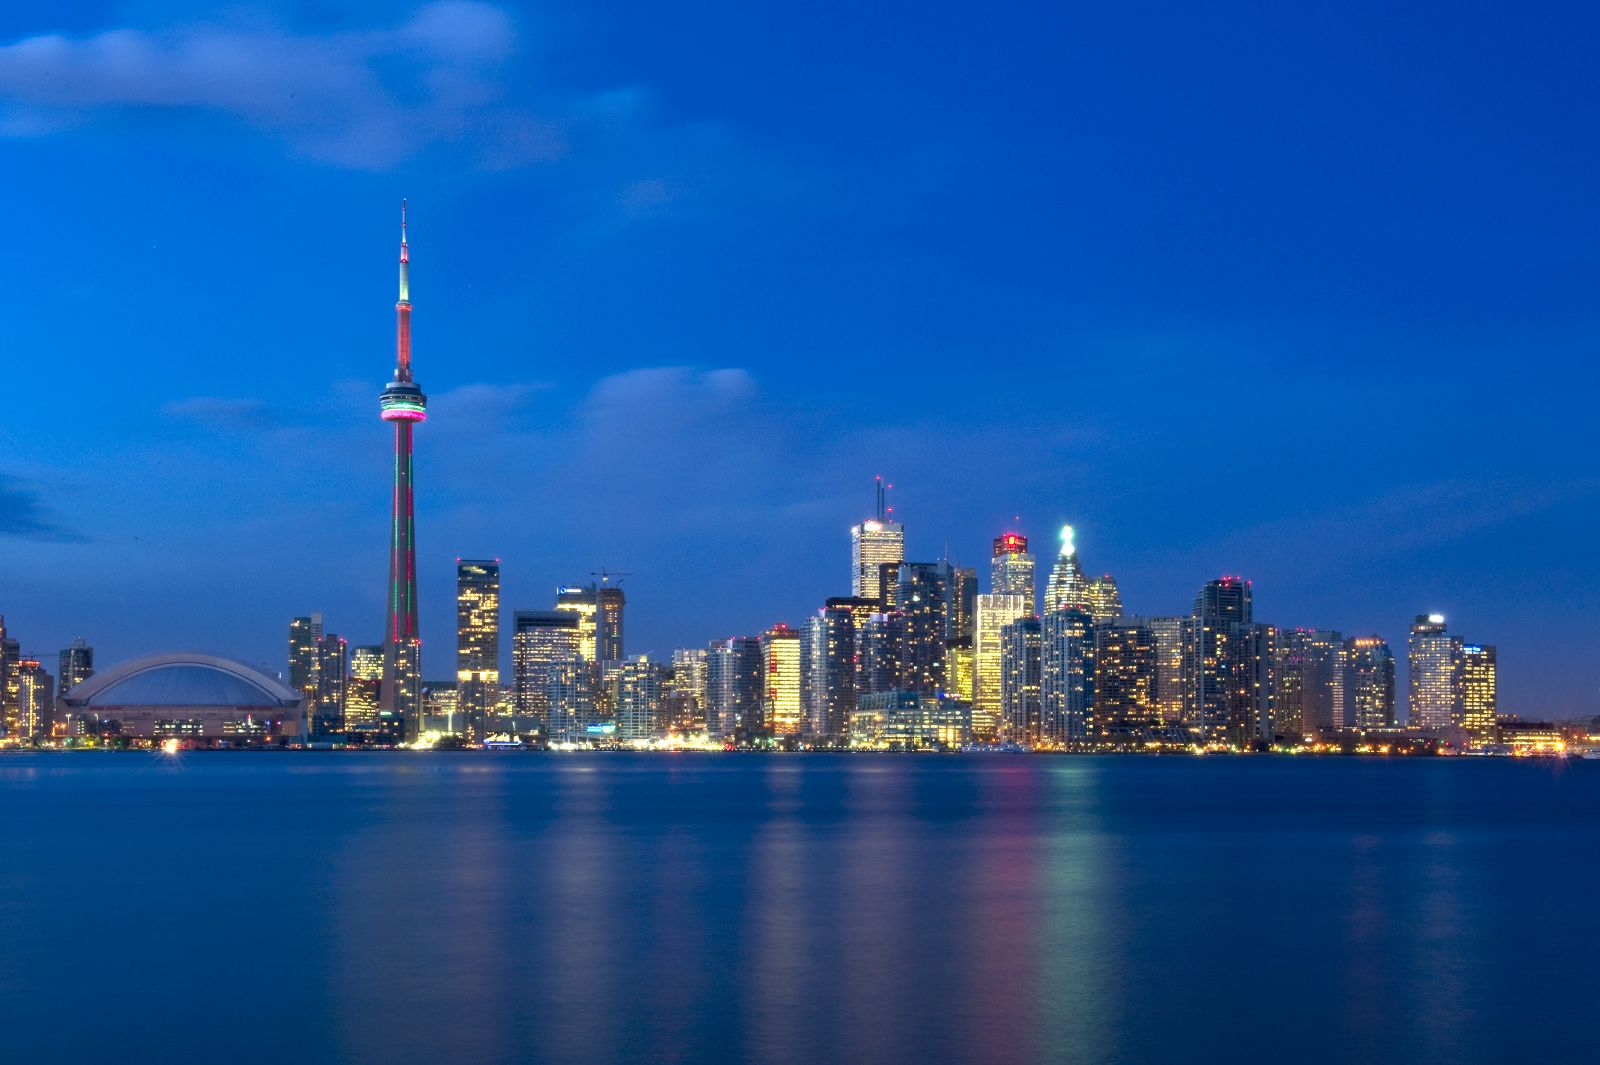 Image of the City of Toronto at Night (Source: City of Toronto)